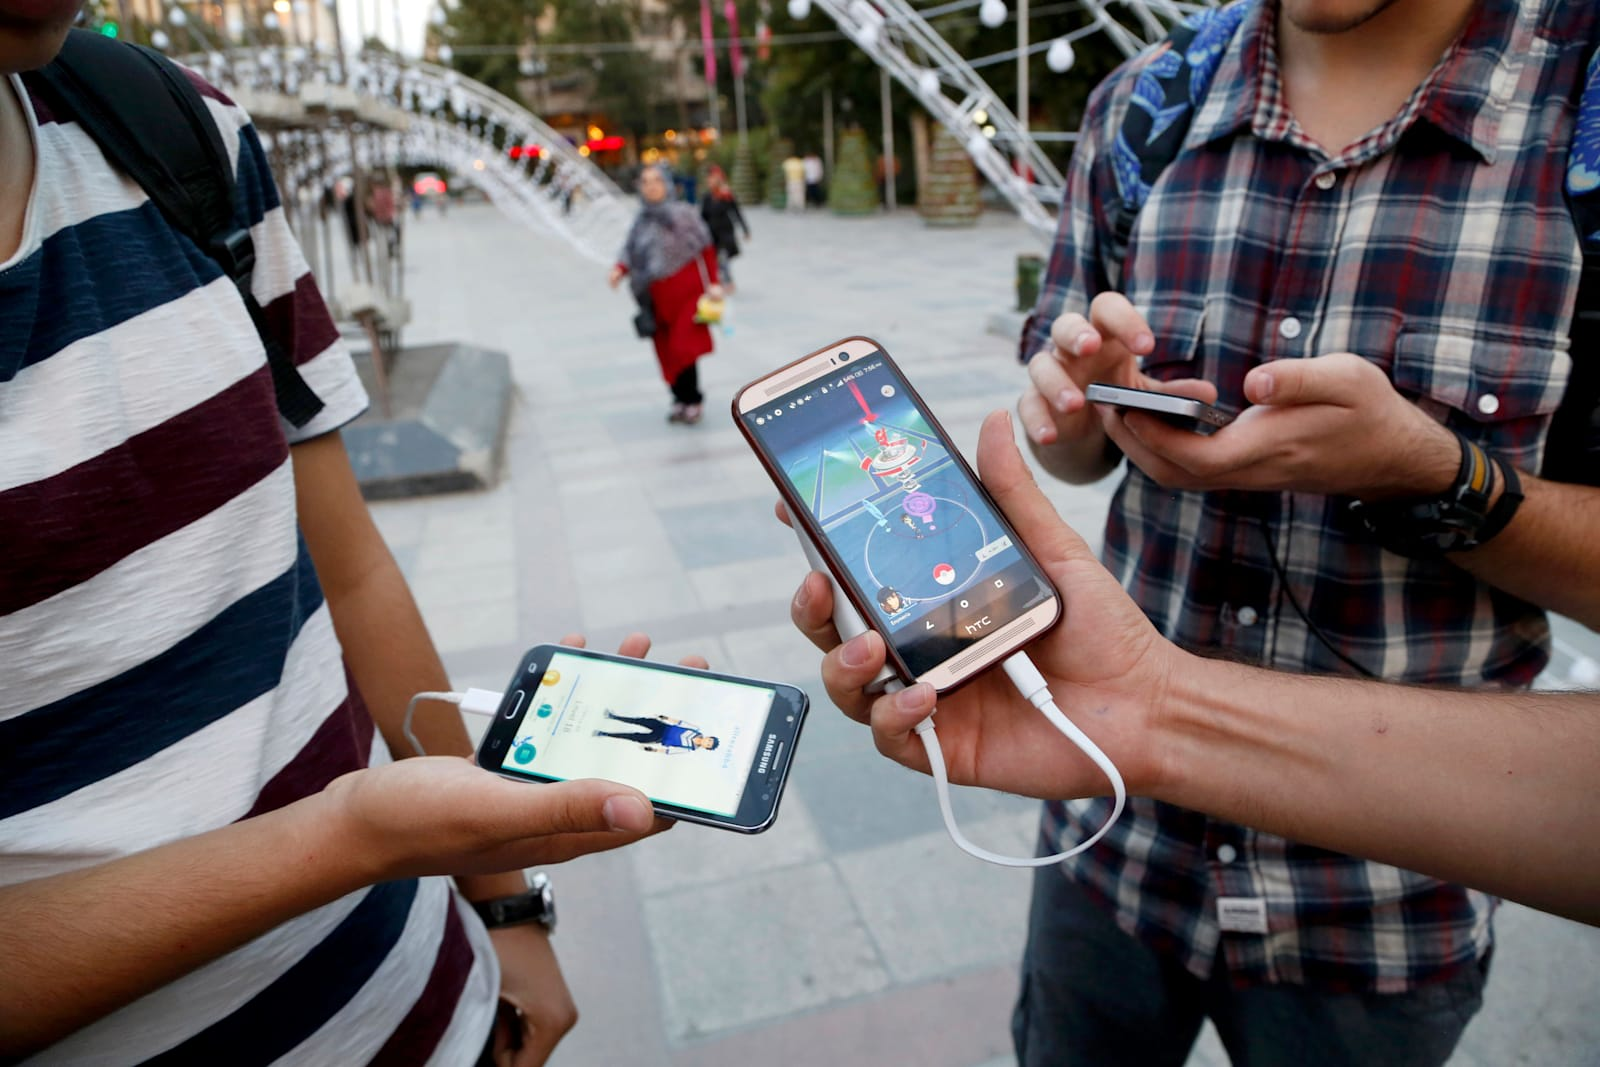 Iran bans 'Pokémon Go' over security jitters